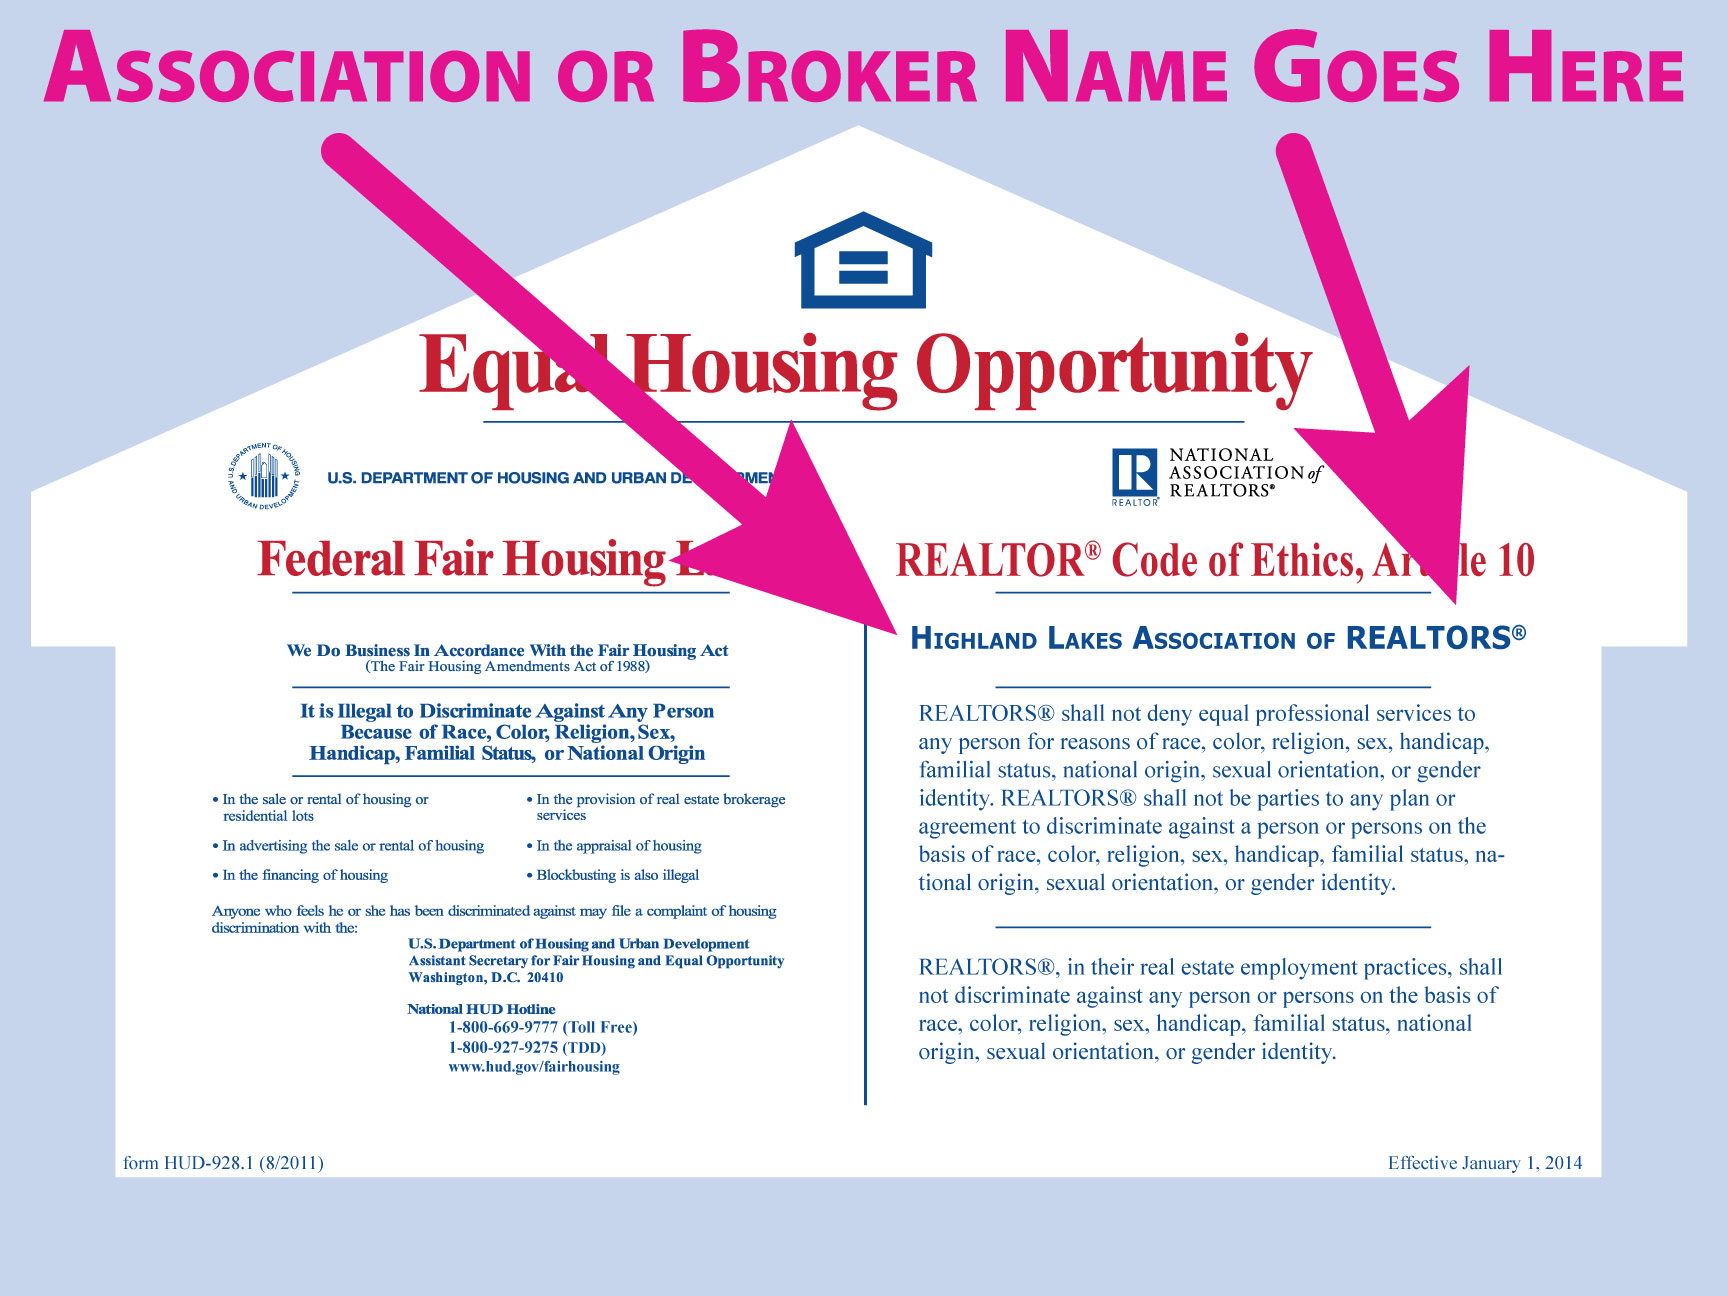 Equal Housing Opportunity Posters Equals,Housings,posters,